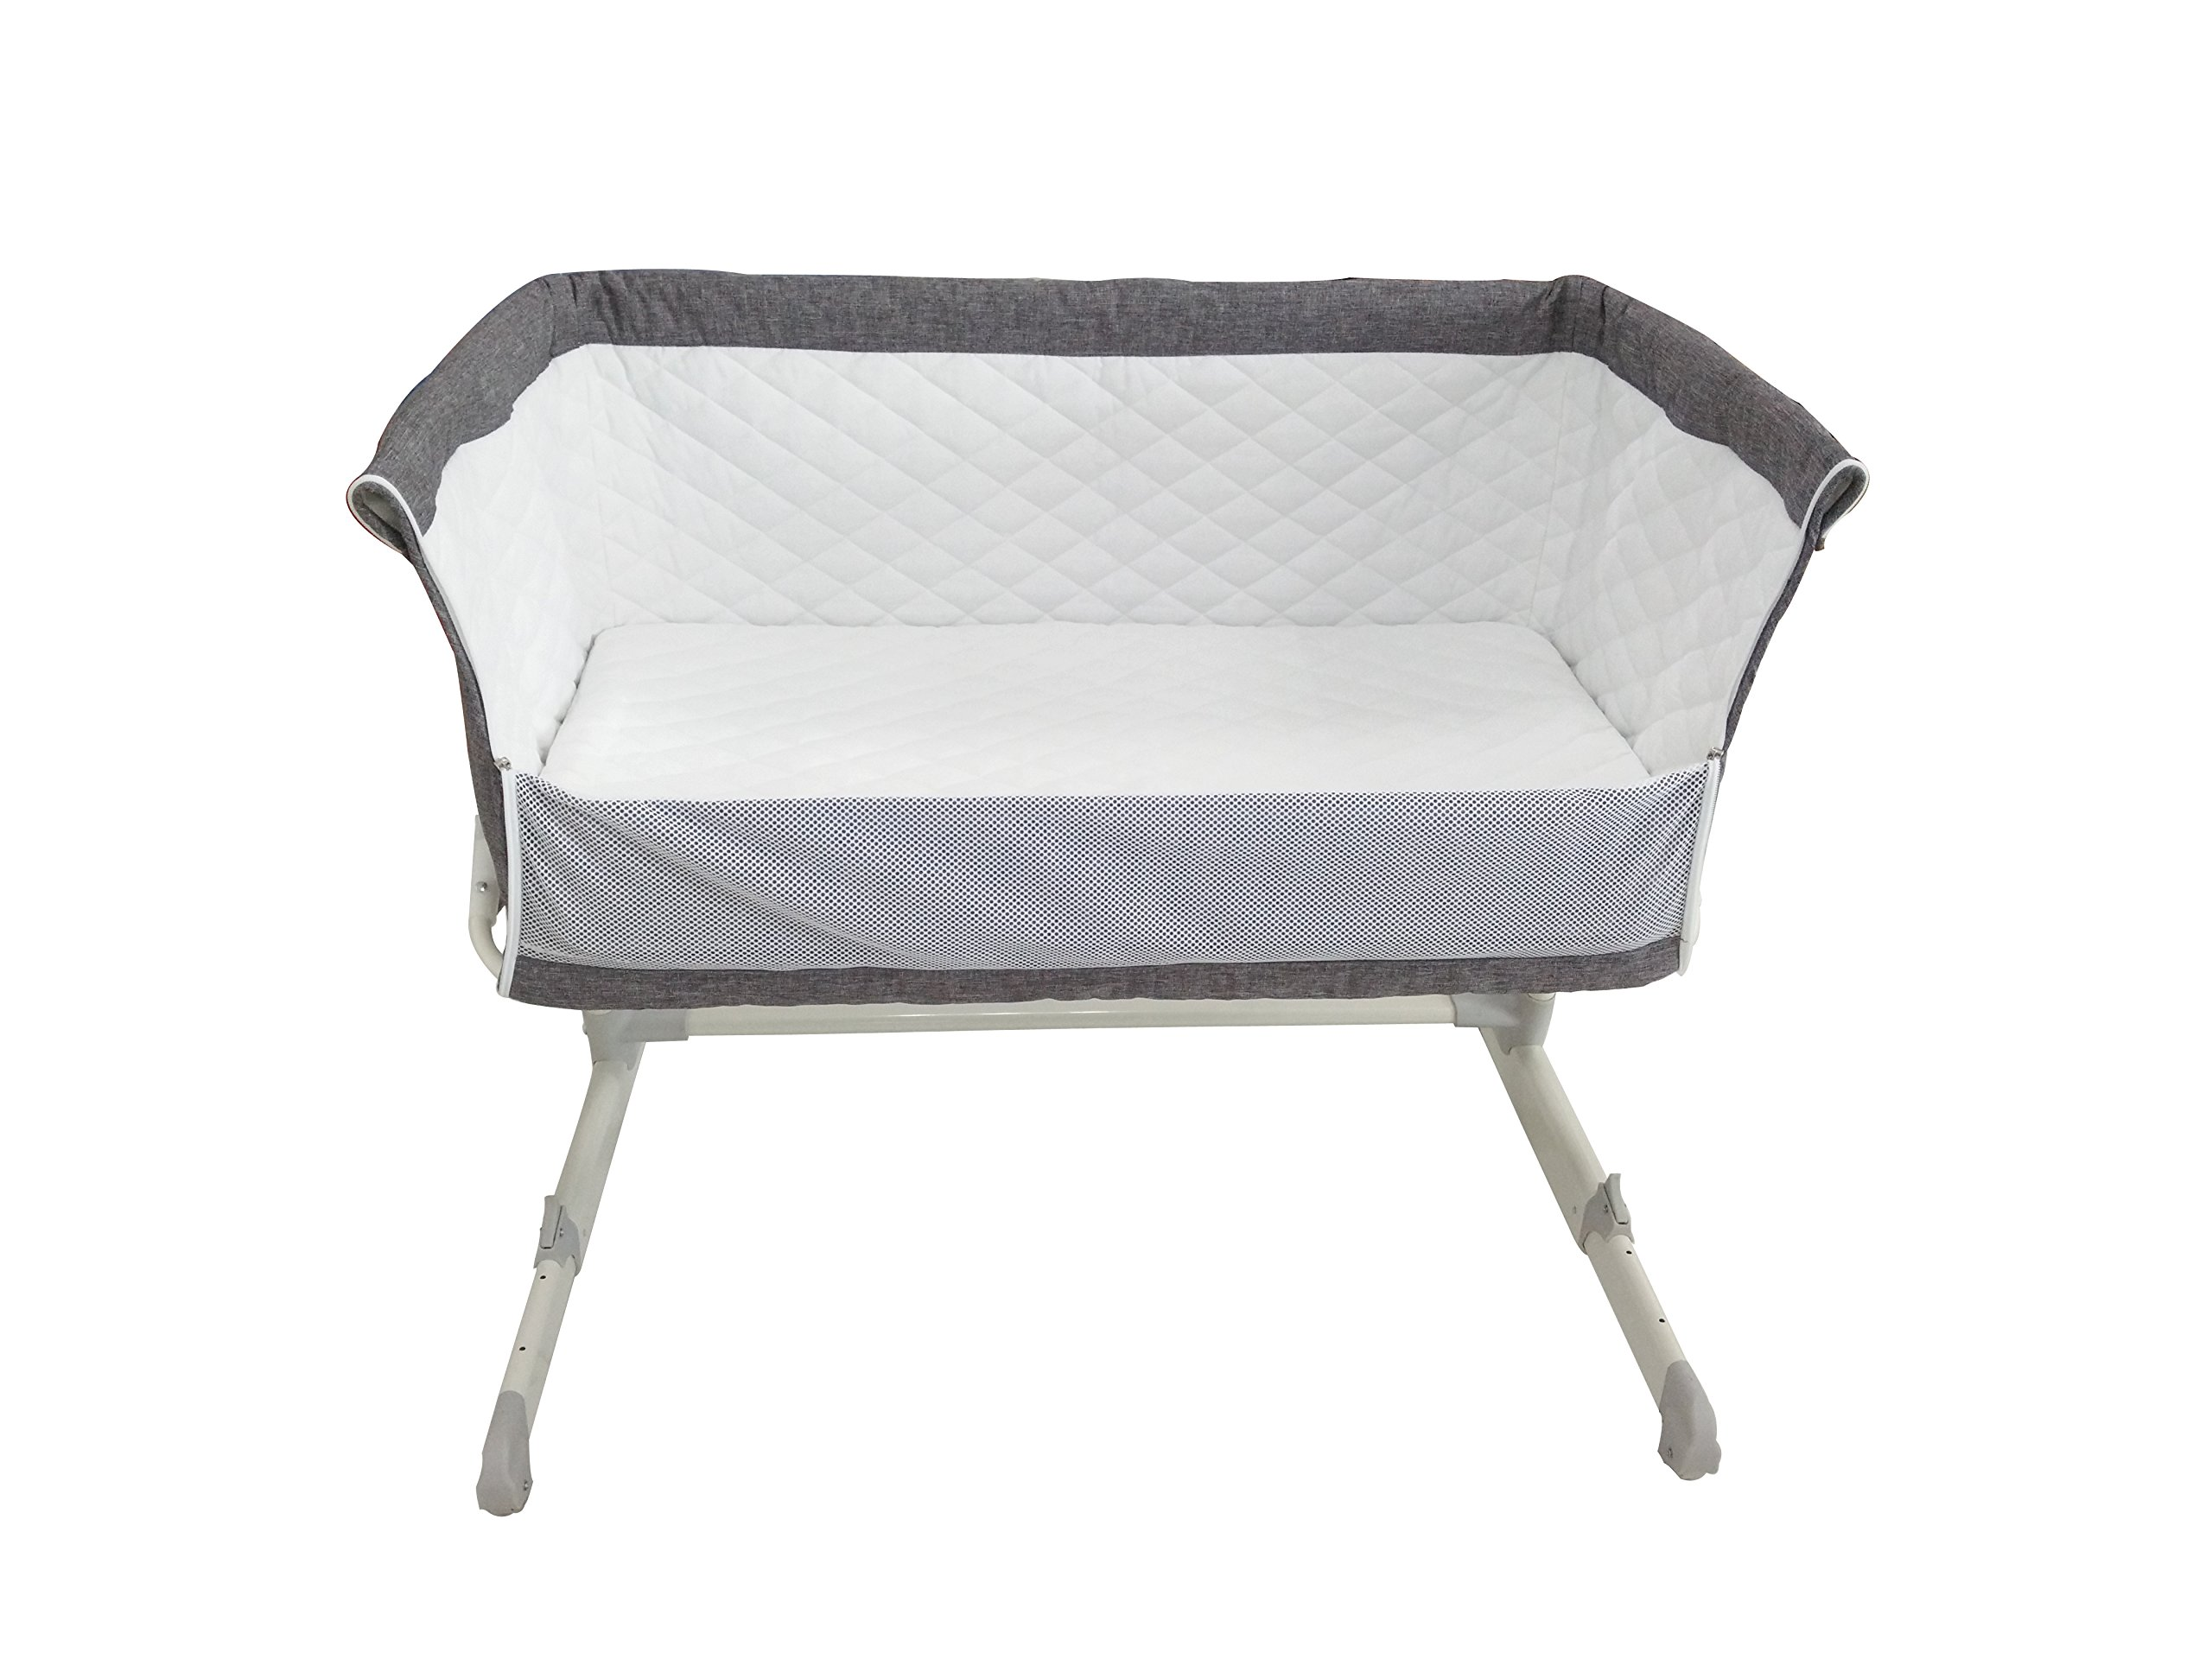 Babylo Cozi Sleeper  Complete with 2 Free Sheets worth £25 Pounds. Removable lining for easy cleaning. Storage Bag Included. European & UK Standard EN1130. Free from Chemicals.  Mattress Fatigue Test BS1877 Certified. Comes fitted with 2 wheels for easy manoeuvrability between rooms. Zip down side panel when fixing to the parents' bed for side-sleeping. Multi-height positions, individually adjustable on each side. Can be set inclined to help with congested breathing and reflux. Use from birth to 9kgs. Stop using when child can sit, kneel or pull themselves up unaided.  Fits both frame and divan beds as the design allows the crib to move flush with bed. Two fastening clip-on straps to hold crib snug against bed. As baby grows you can move it away from the bed and use as a normal crib. Removable and washable lining. Soft removable mattress included. 2 free sheets included. Soft quilted sides with mesh for visibility and ventilation. Easy manoeuvrability, assembly and use. Mattress size 87lx46wx4d. Handy storage bag for transportation. 4